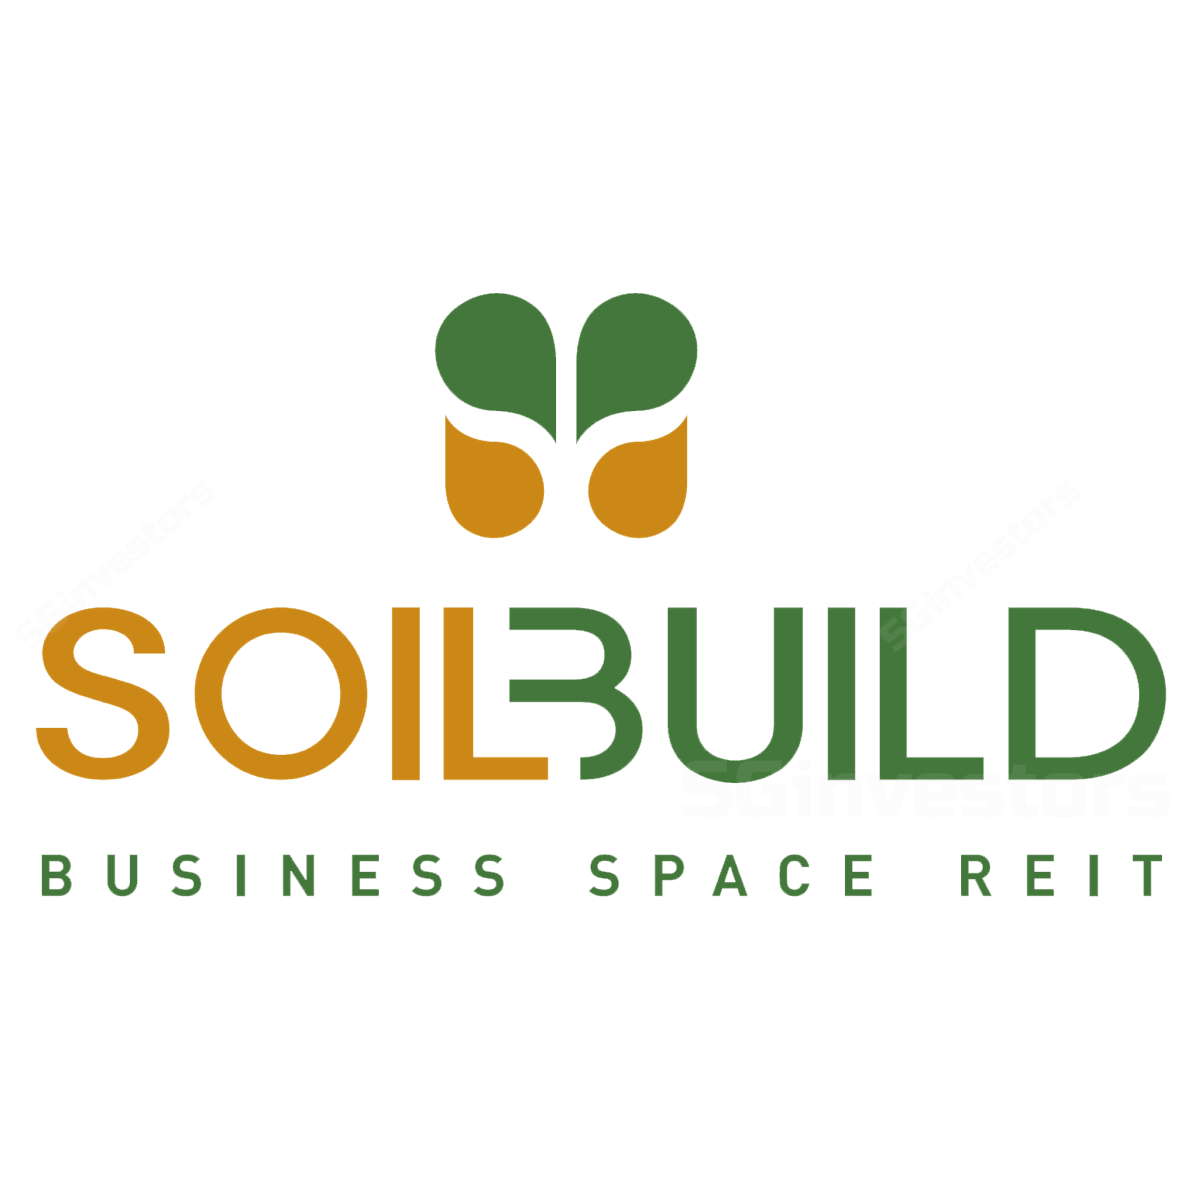 Soilbuild Business Space Reit - DBS Vickers 2017-01-04: A helping hand from the sponsor